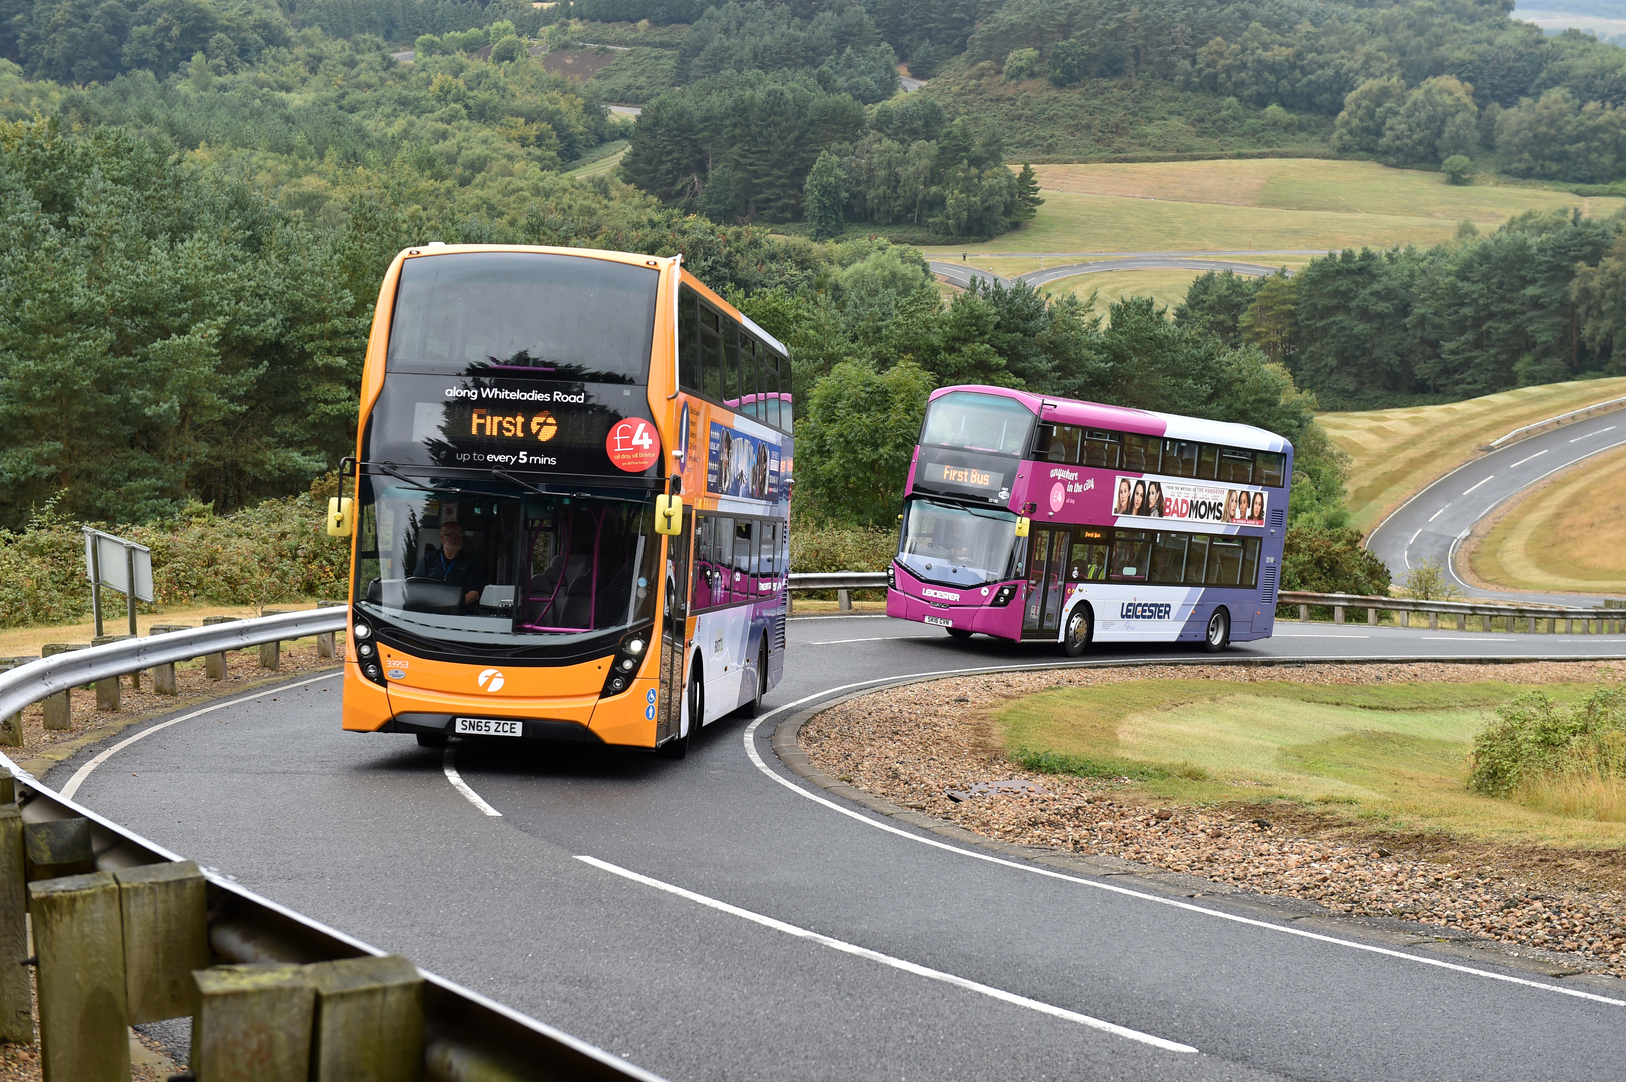 First Bus tests vehicles at the Millbrook Proving Ground.